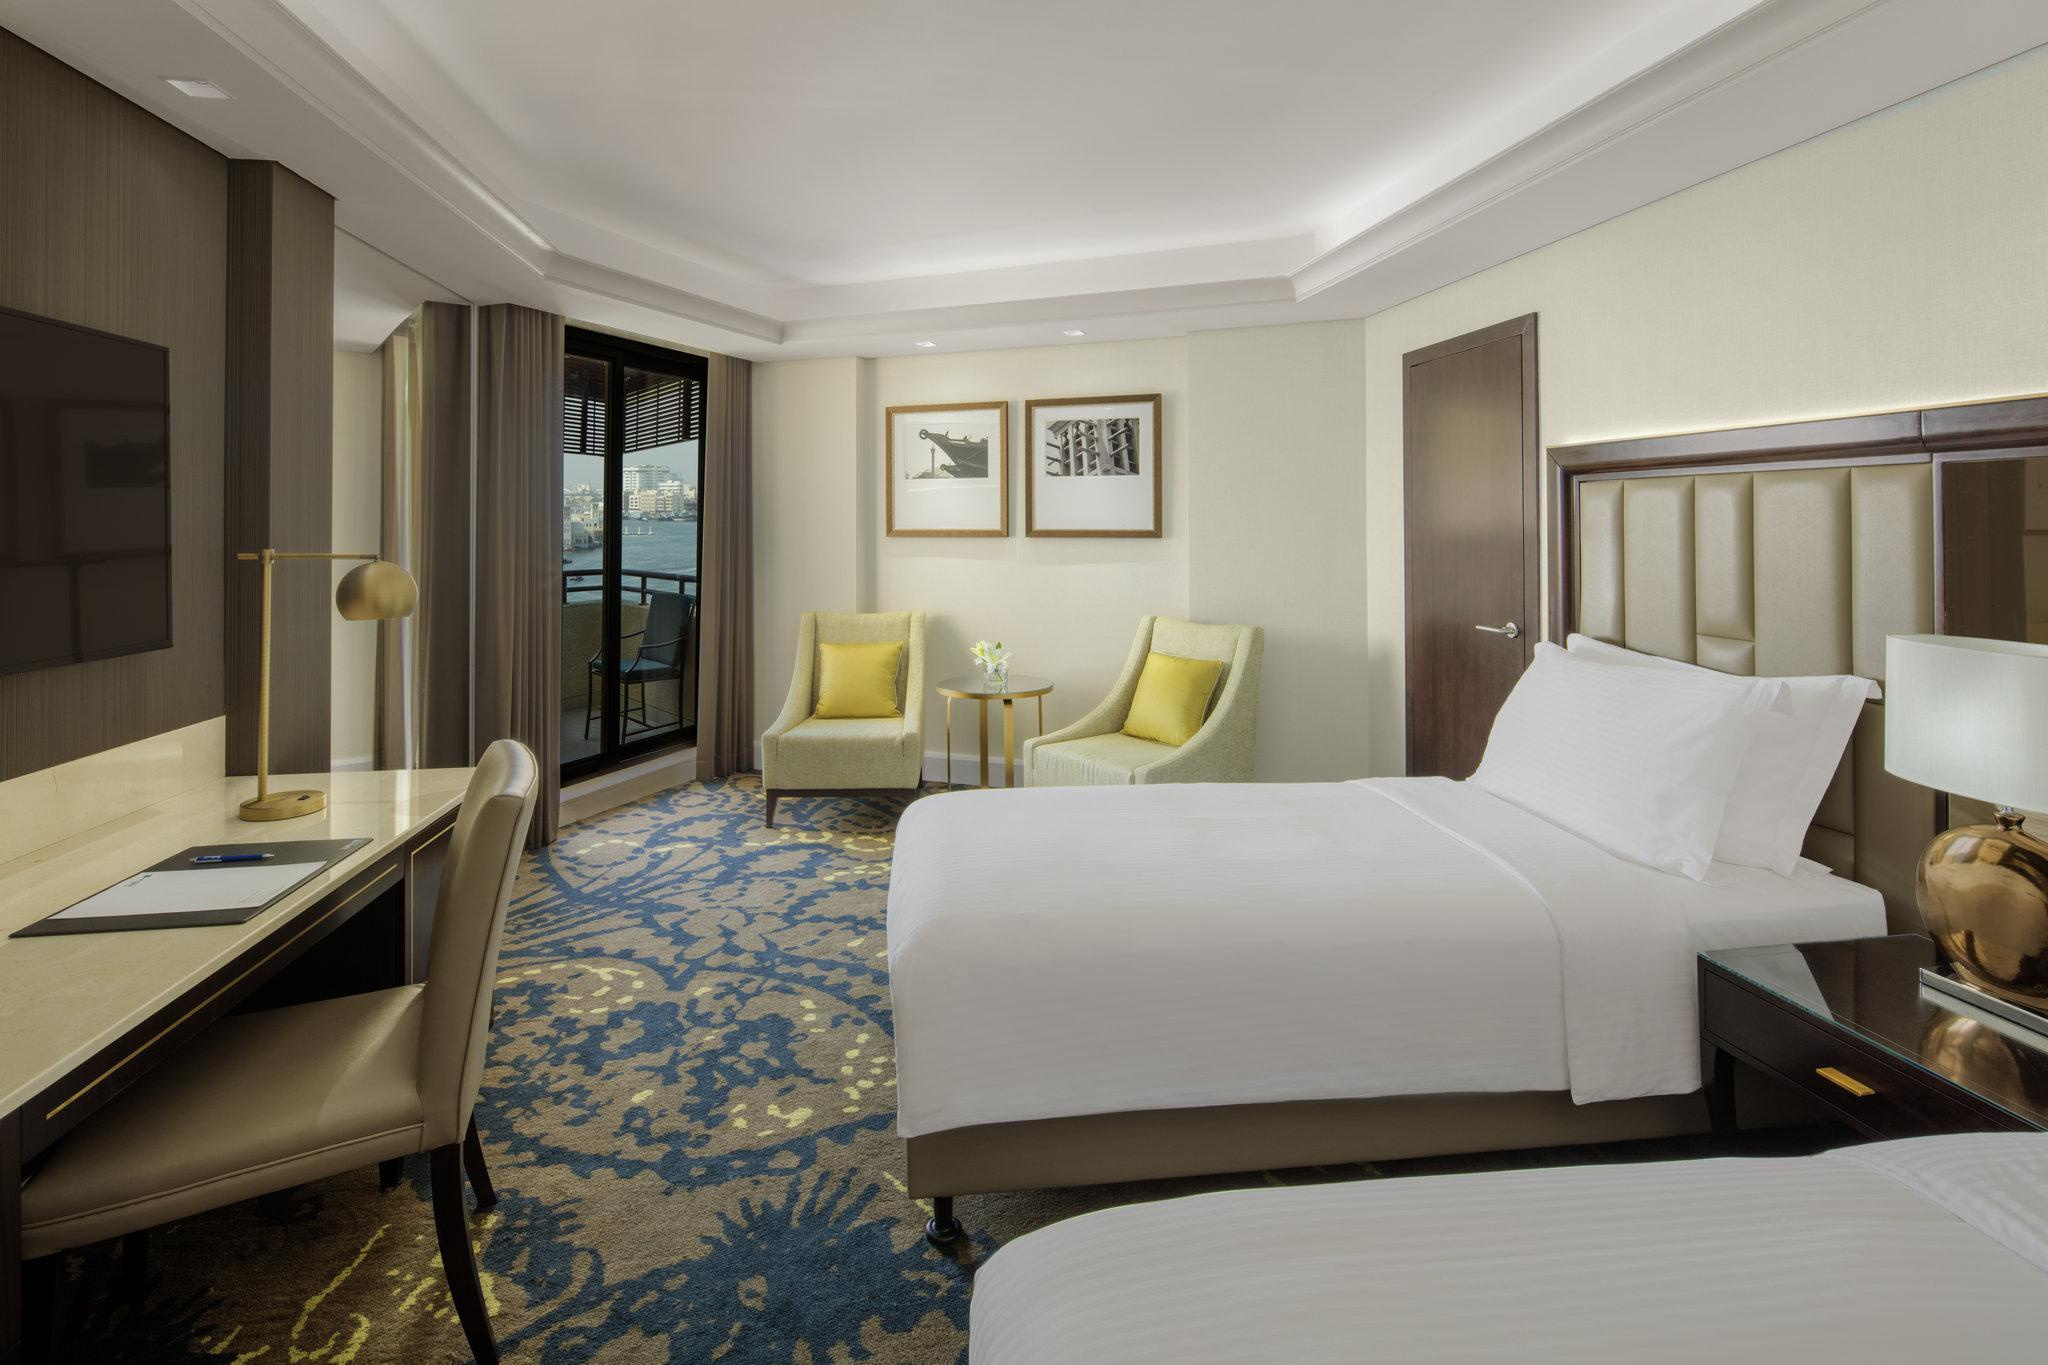 Hotels in Dubai | Find Dubai Hotel Deals with Skyscanner